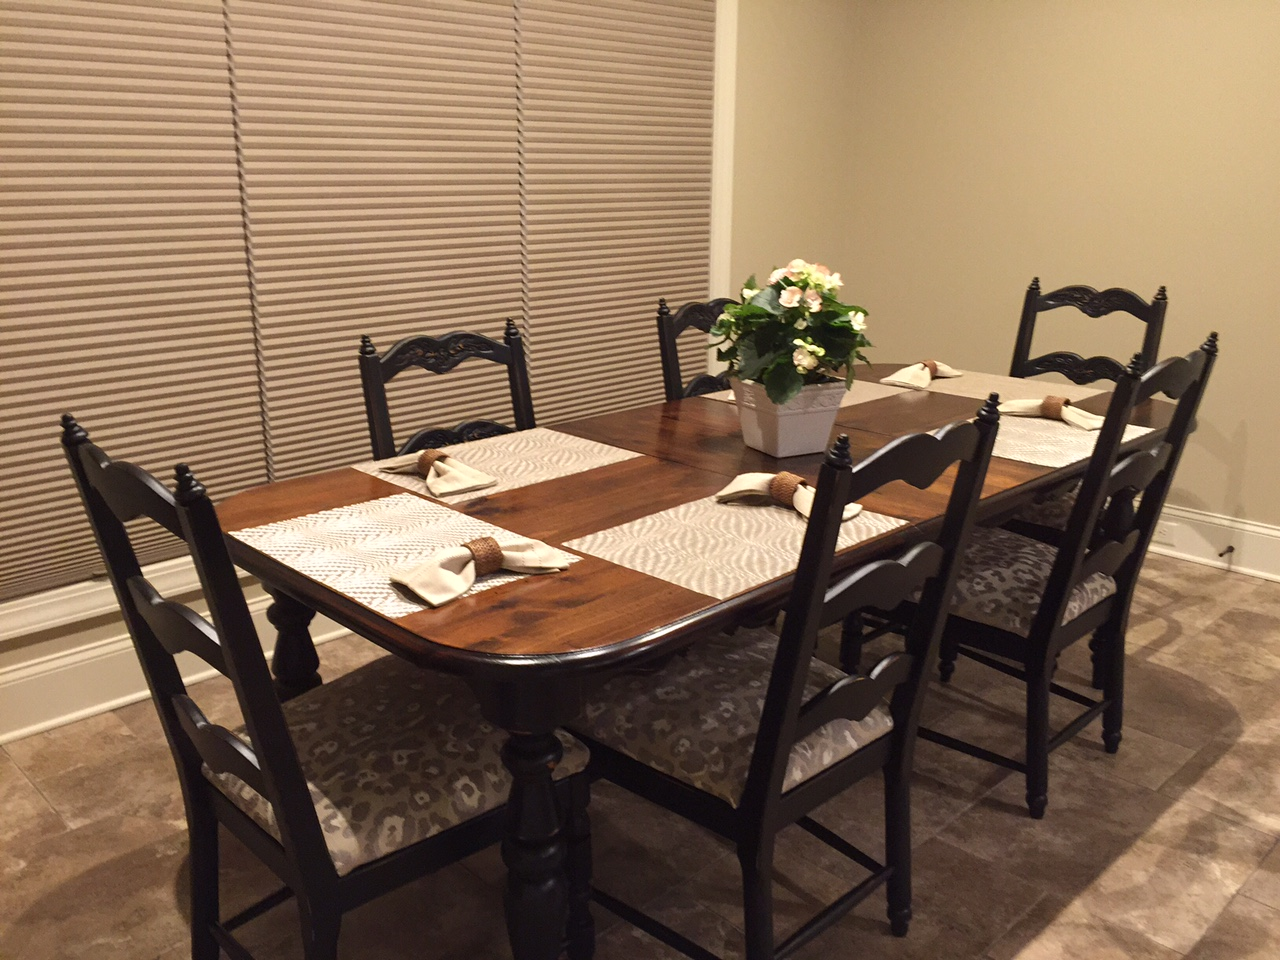 paged 2 refinishing kitchen table REFINISHED DINING TABLE AND CHAIR SET